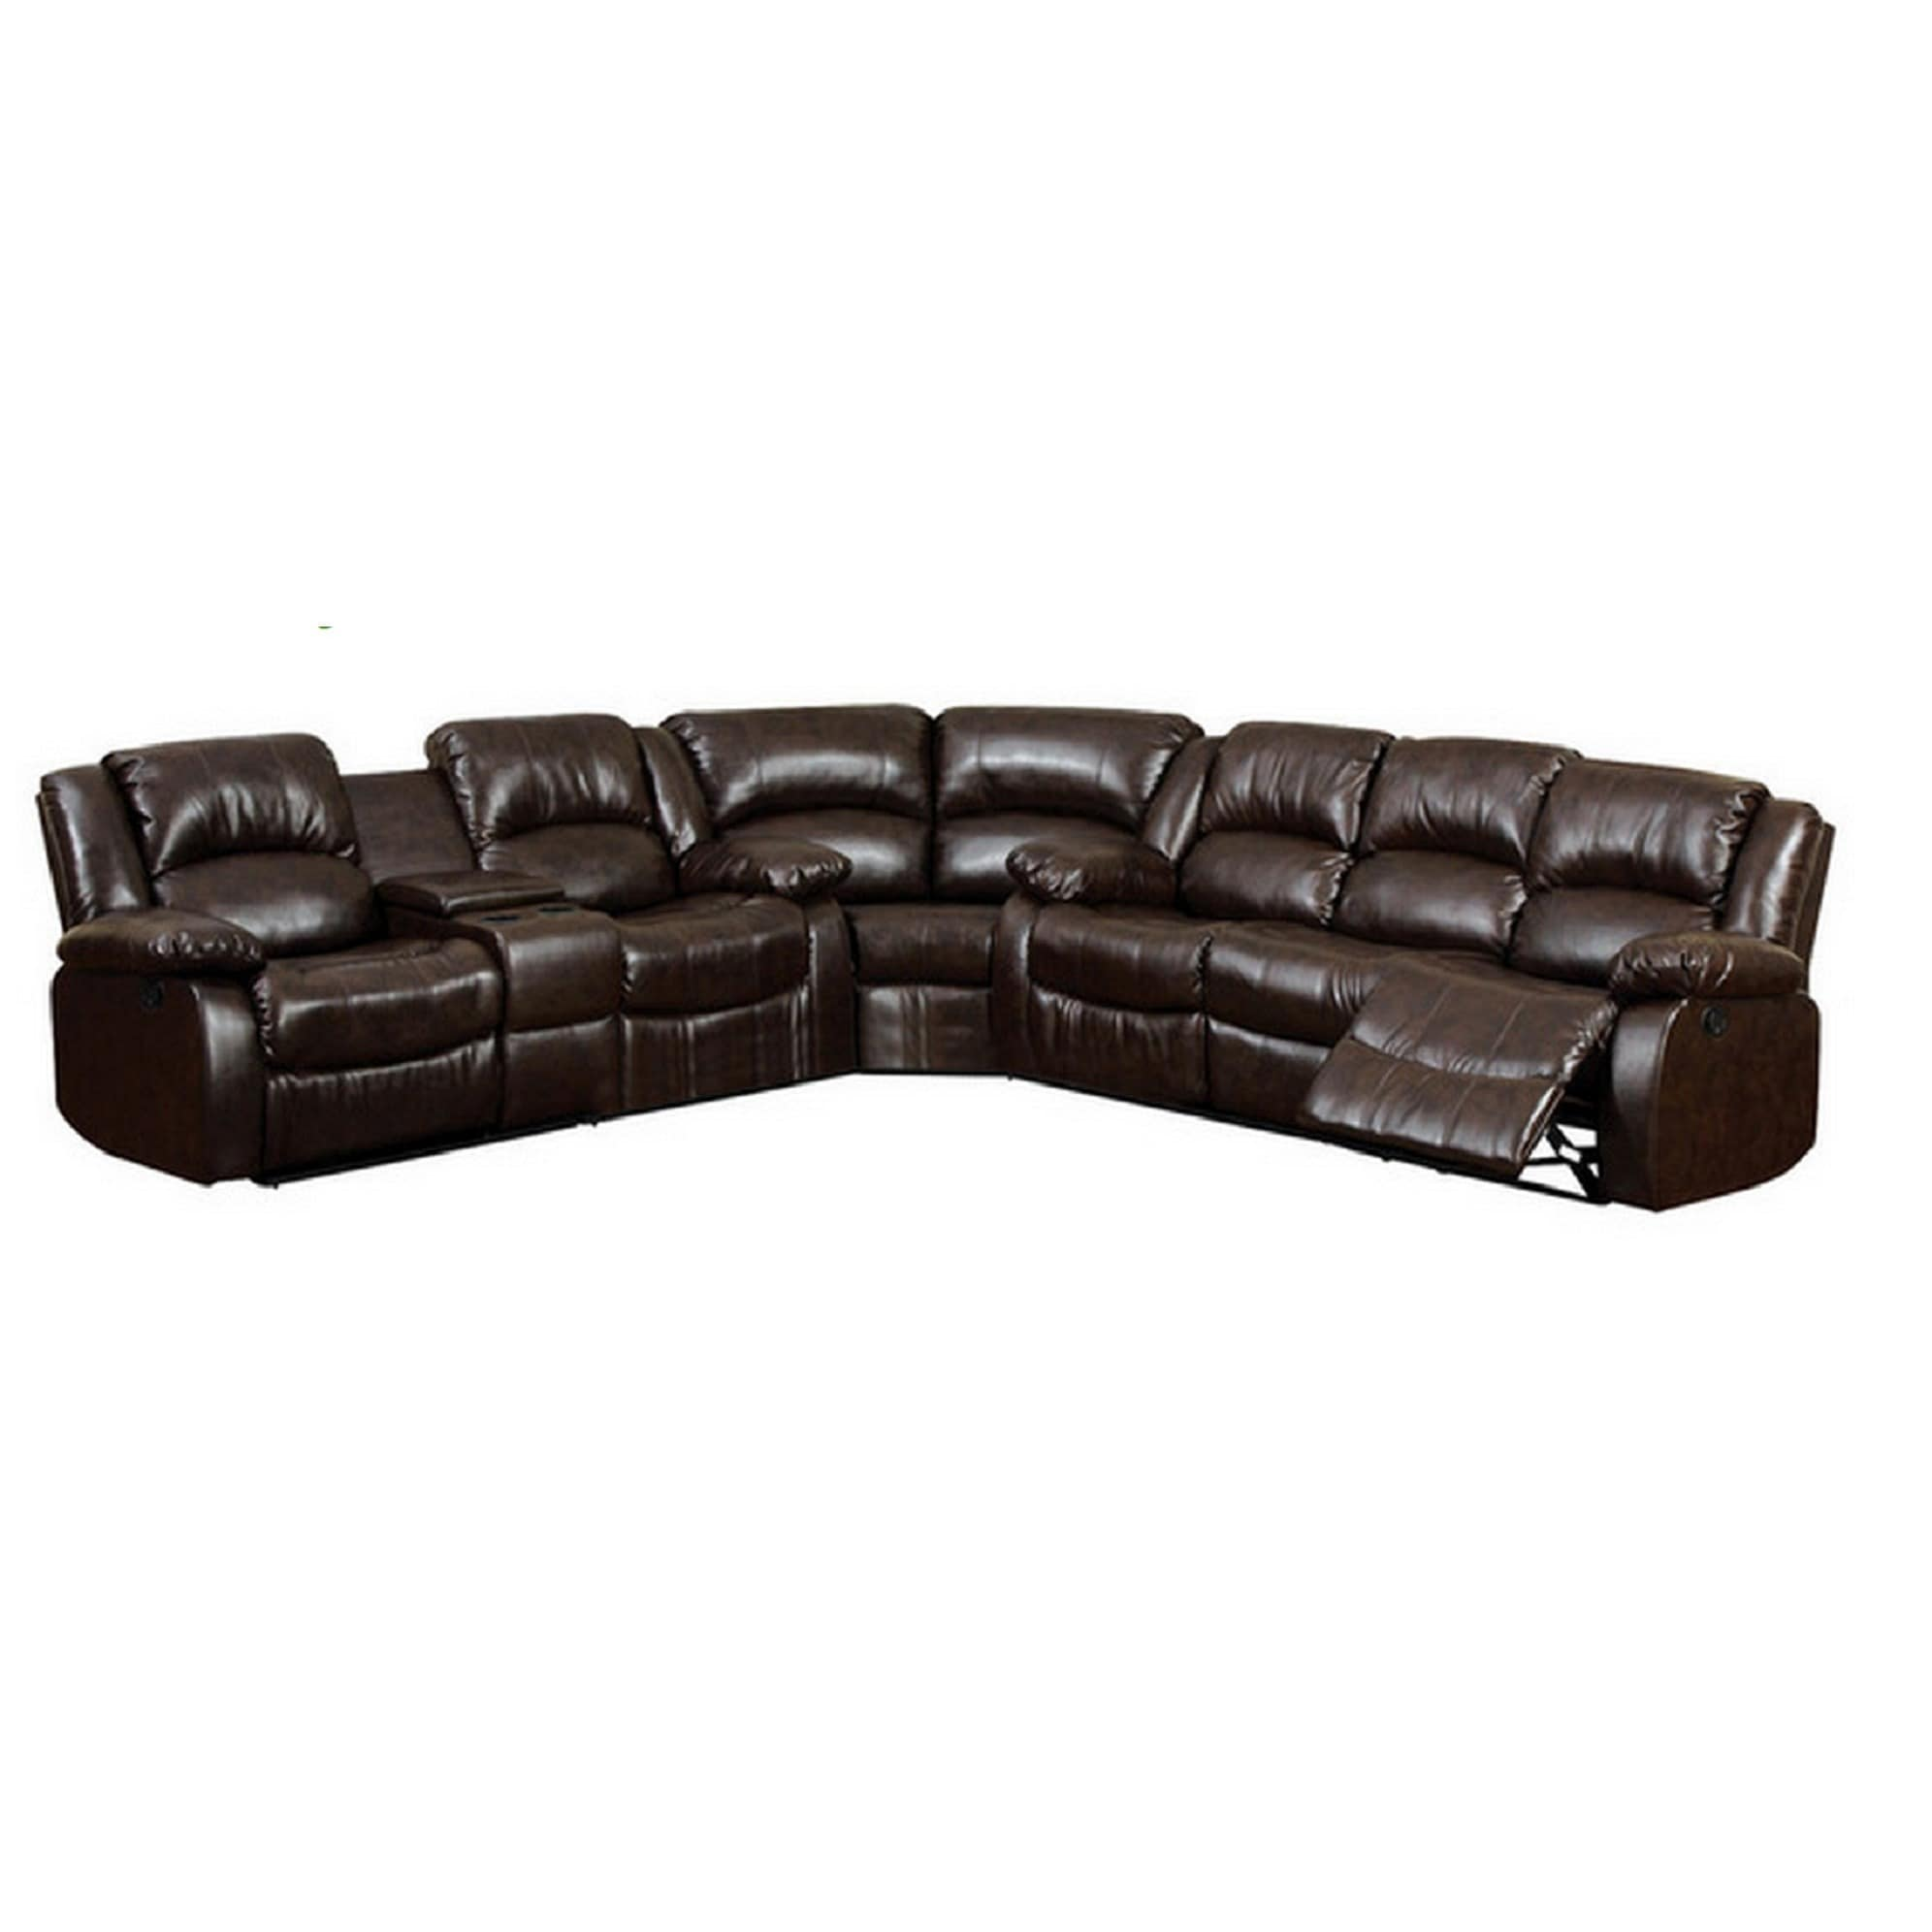 sofa couches home rustic pacifico recliners sectional cm recliner sale theater seating theatre of couch set palliser sectionals furniture microfiber washburn transitional brown america